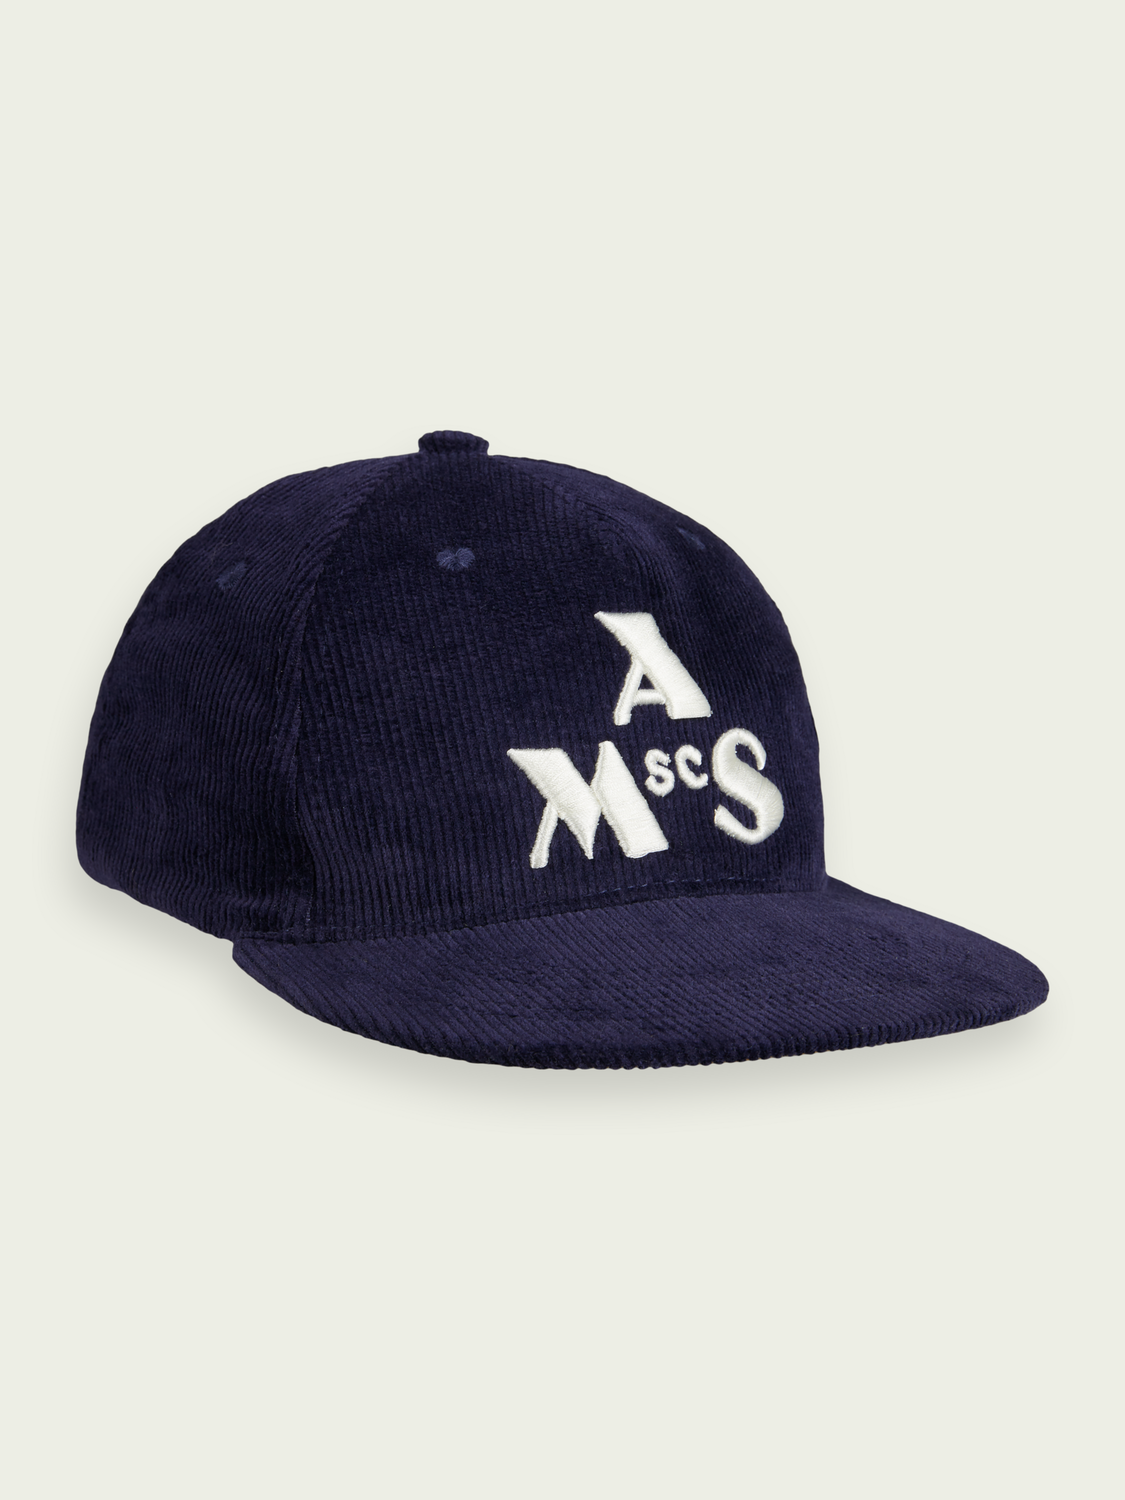 Hidden category Embroidered-graphic corduroy cap